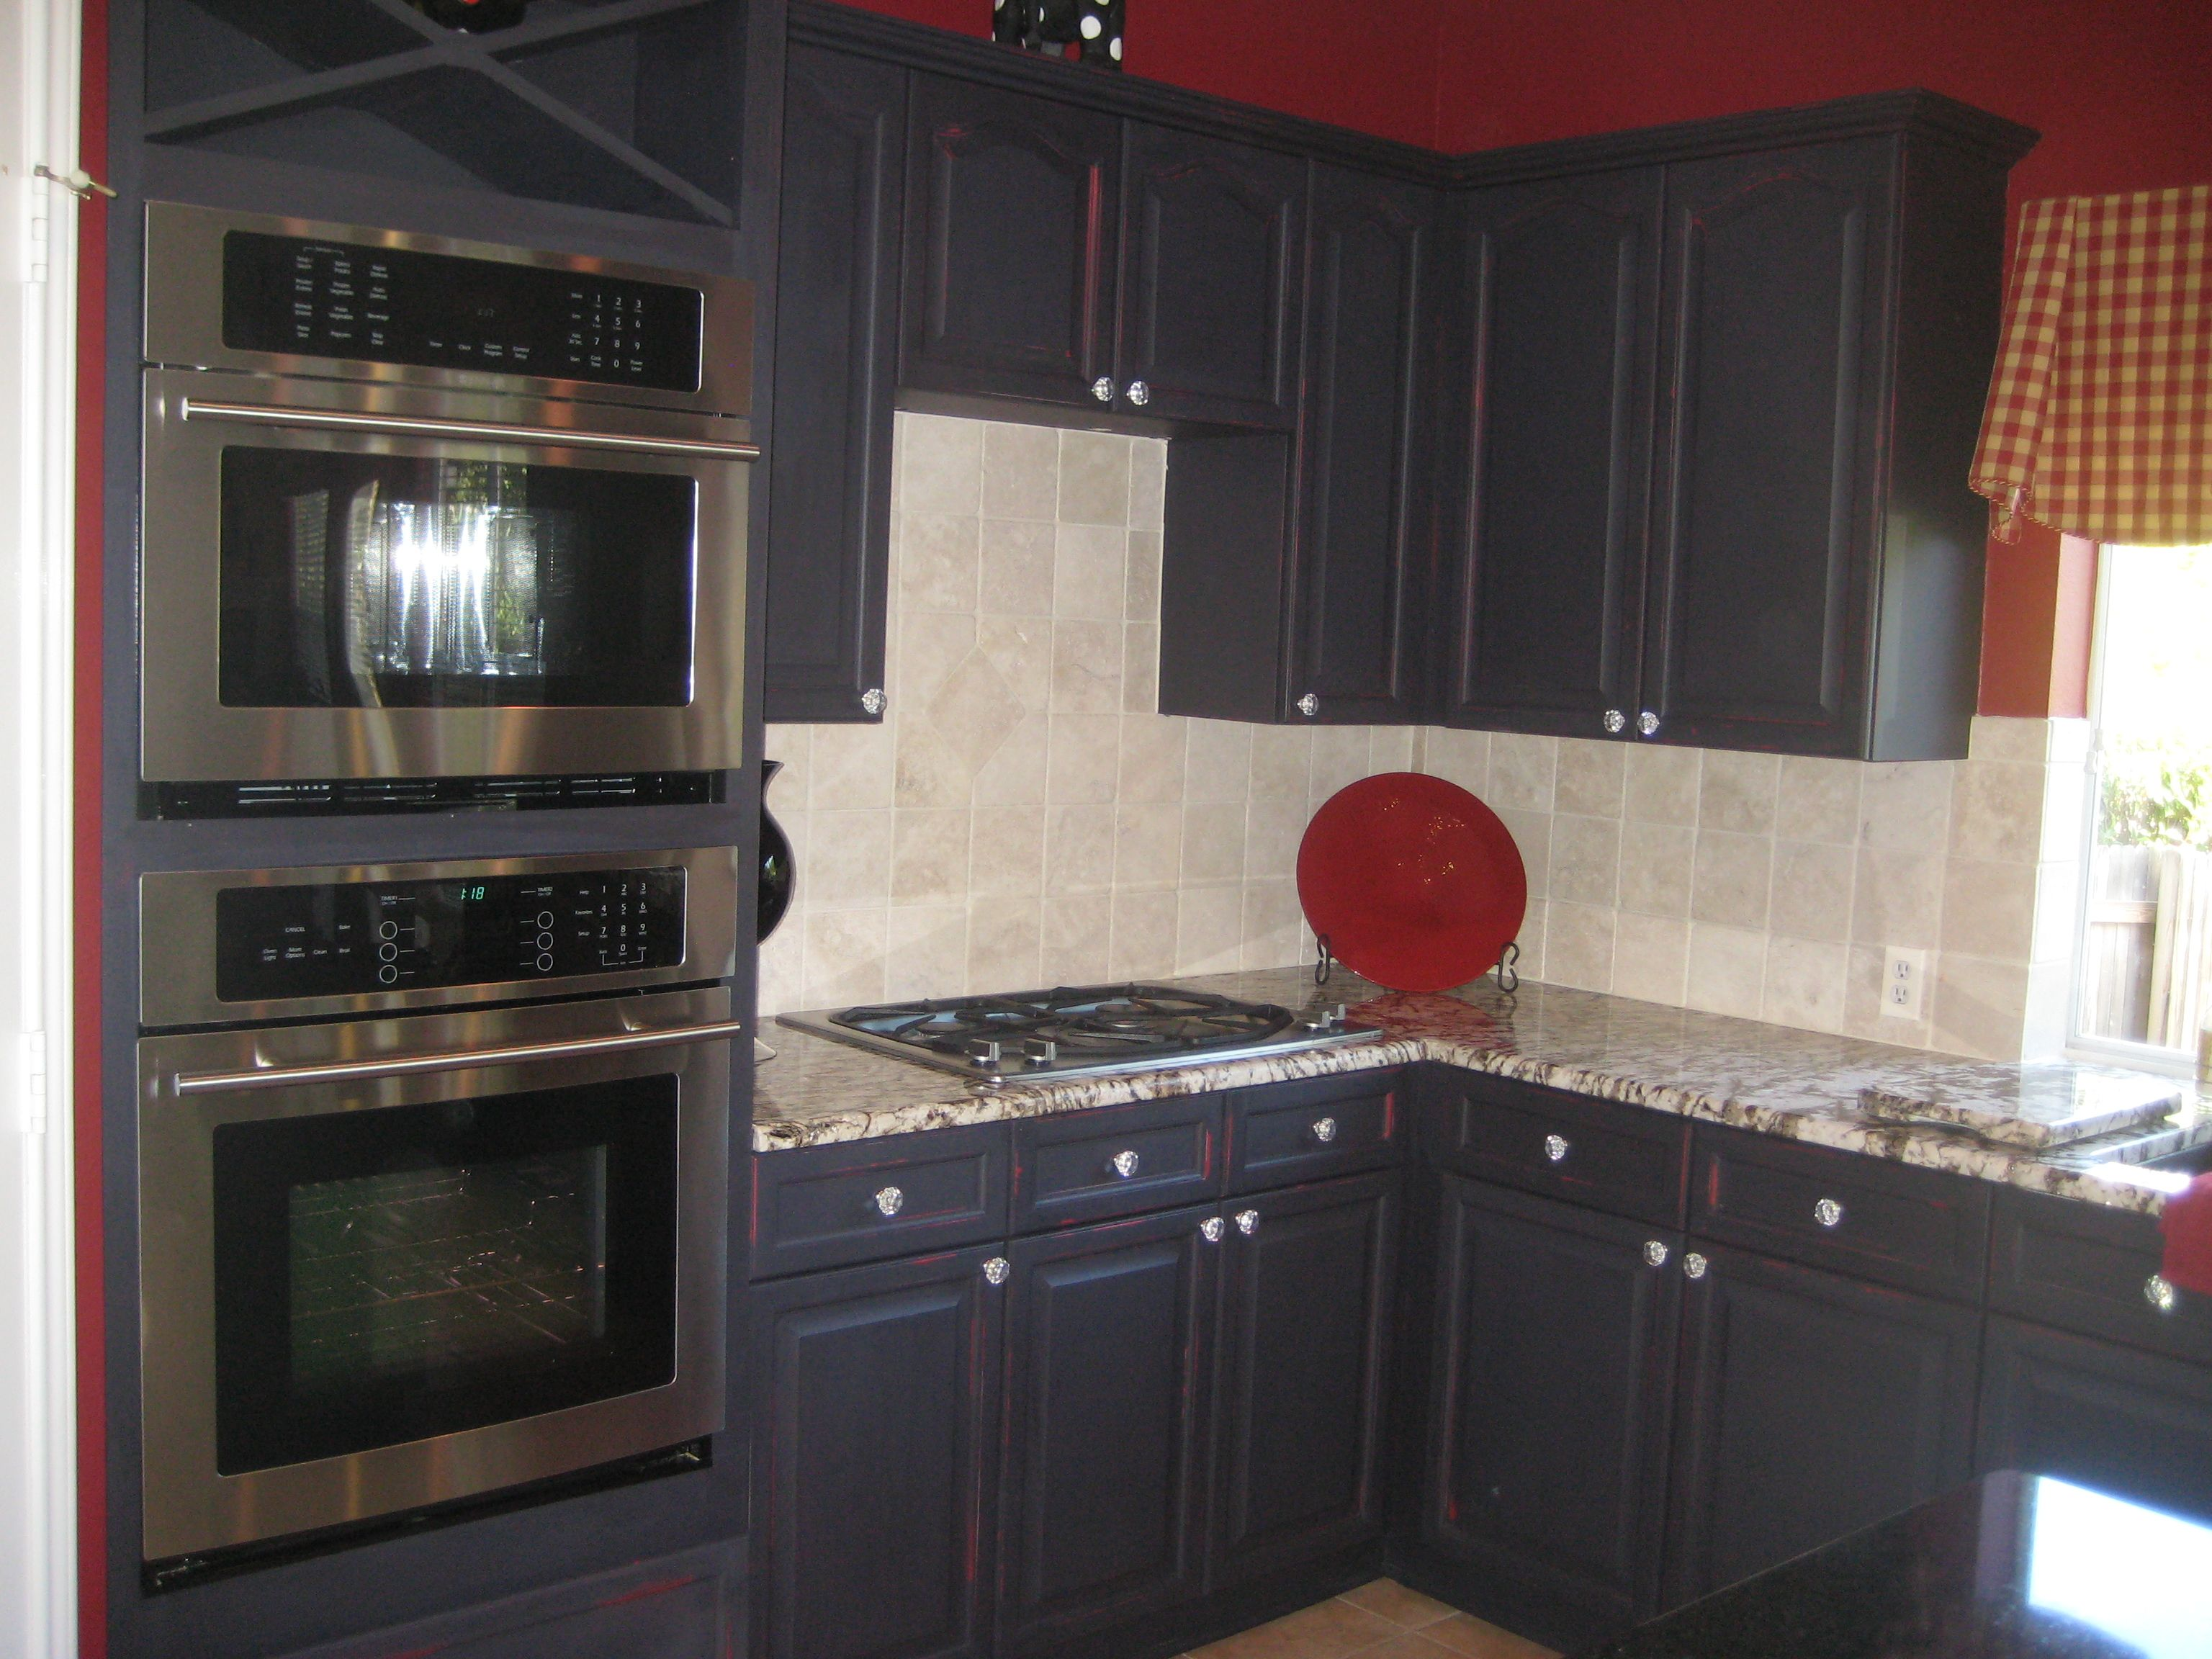 Faux Finished Kitchen Cabinets - Distressed Red & Black ...